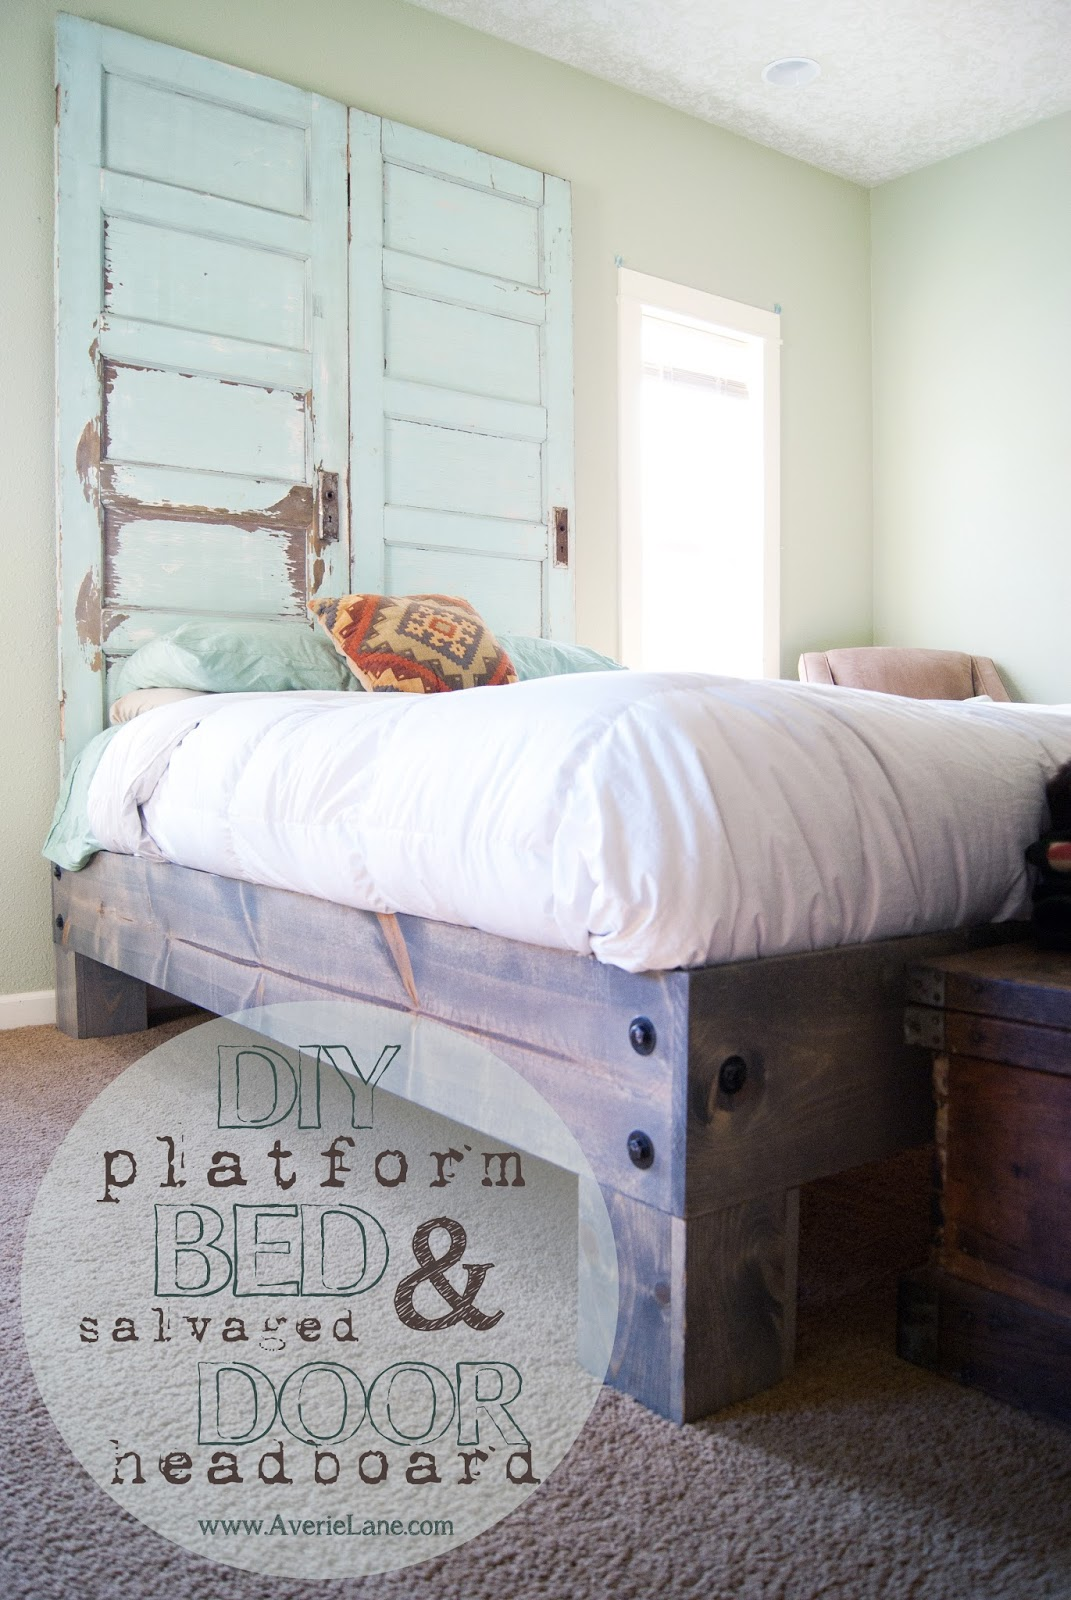 Diy Platform Bed Salvaged Door Headboard